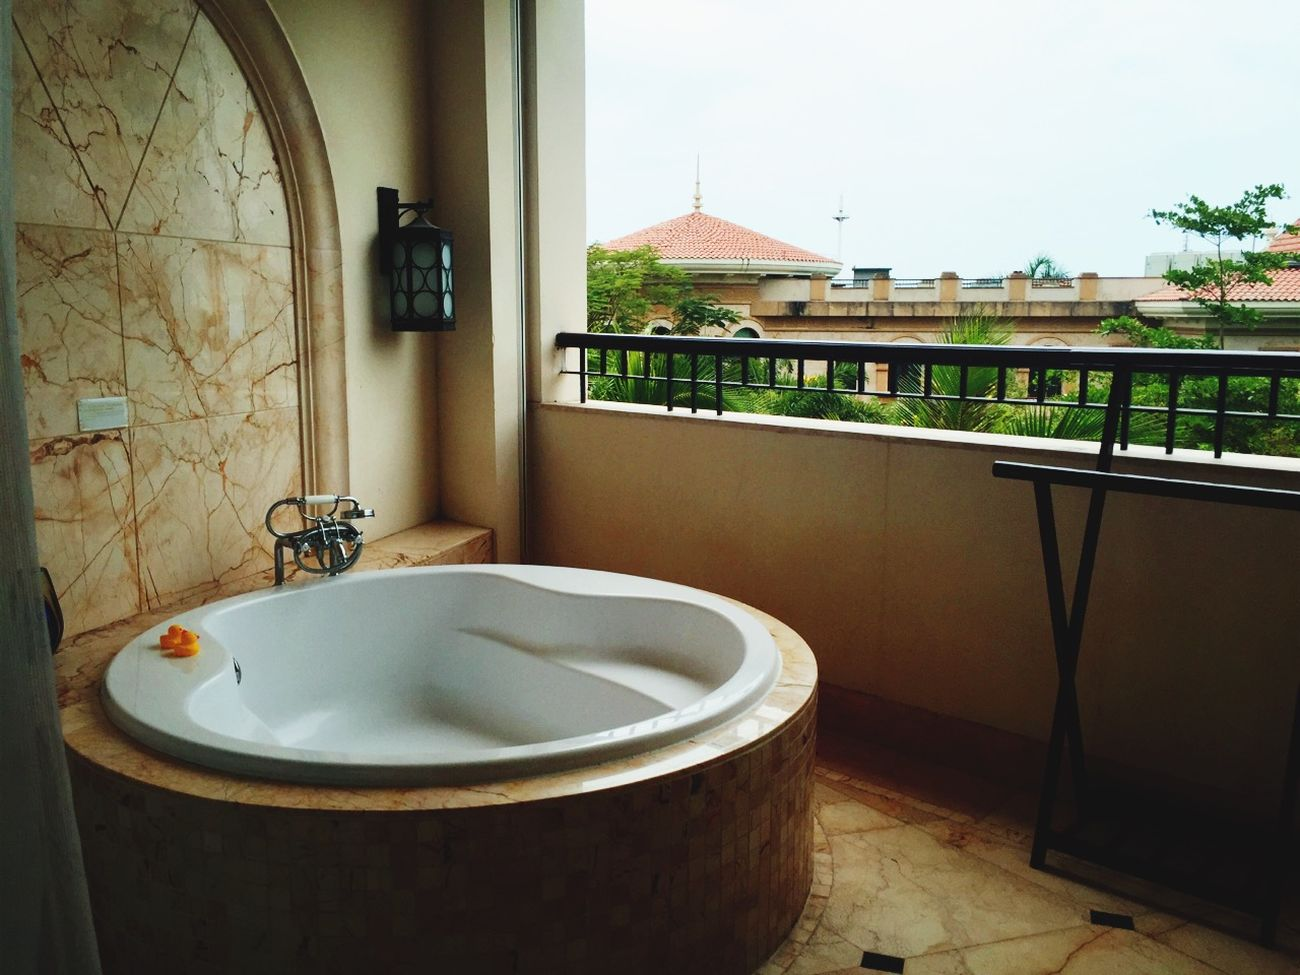 Bath Sanya Holiday Throwback Missing It... I Need This Hotel